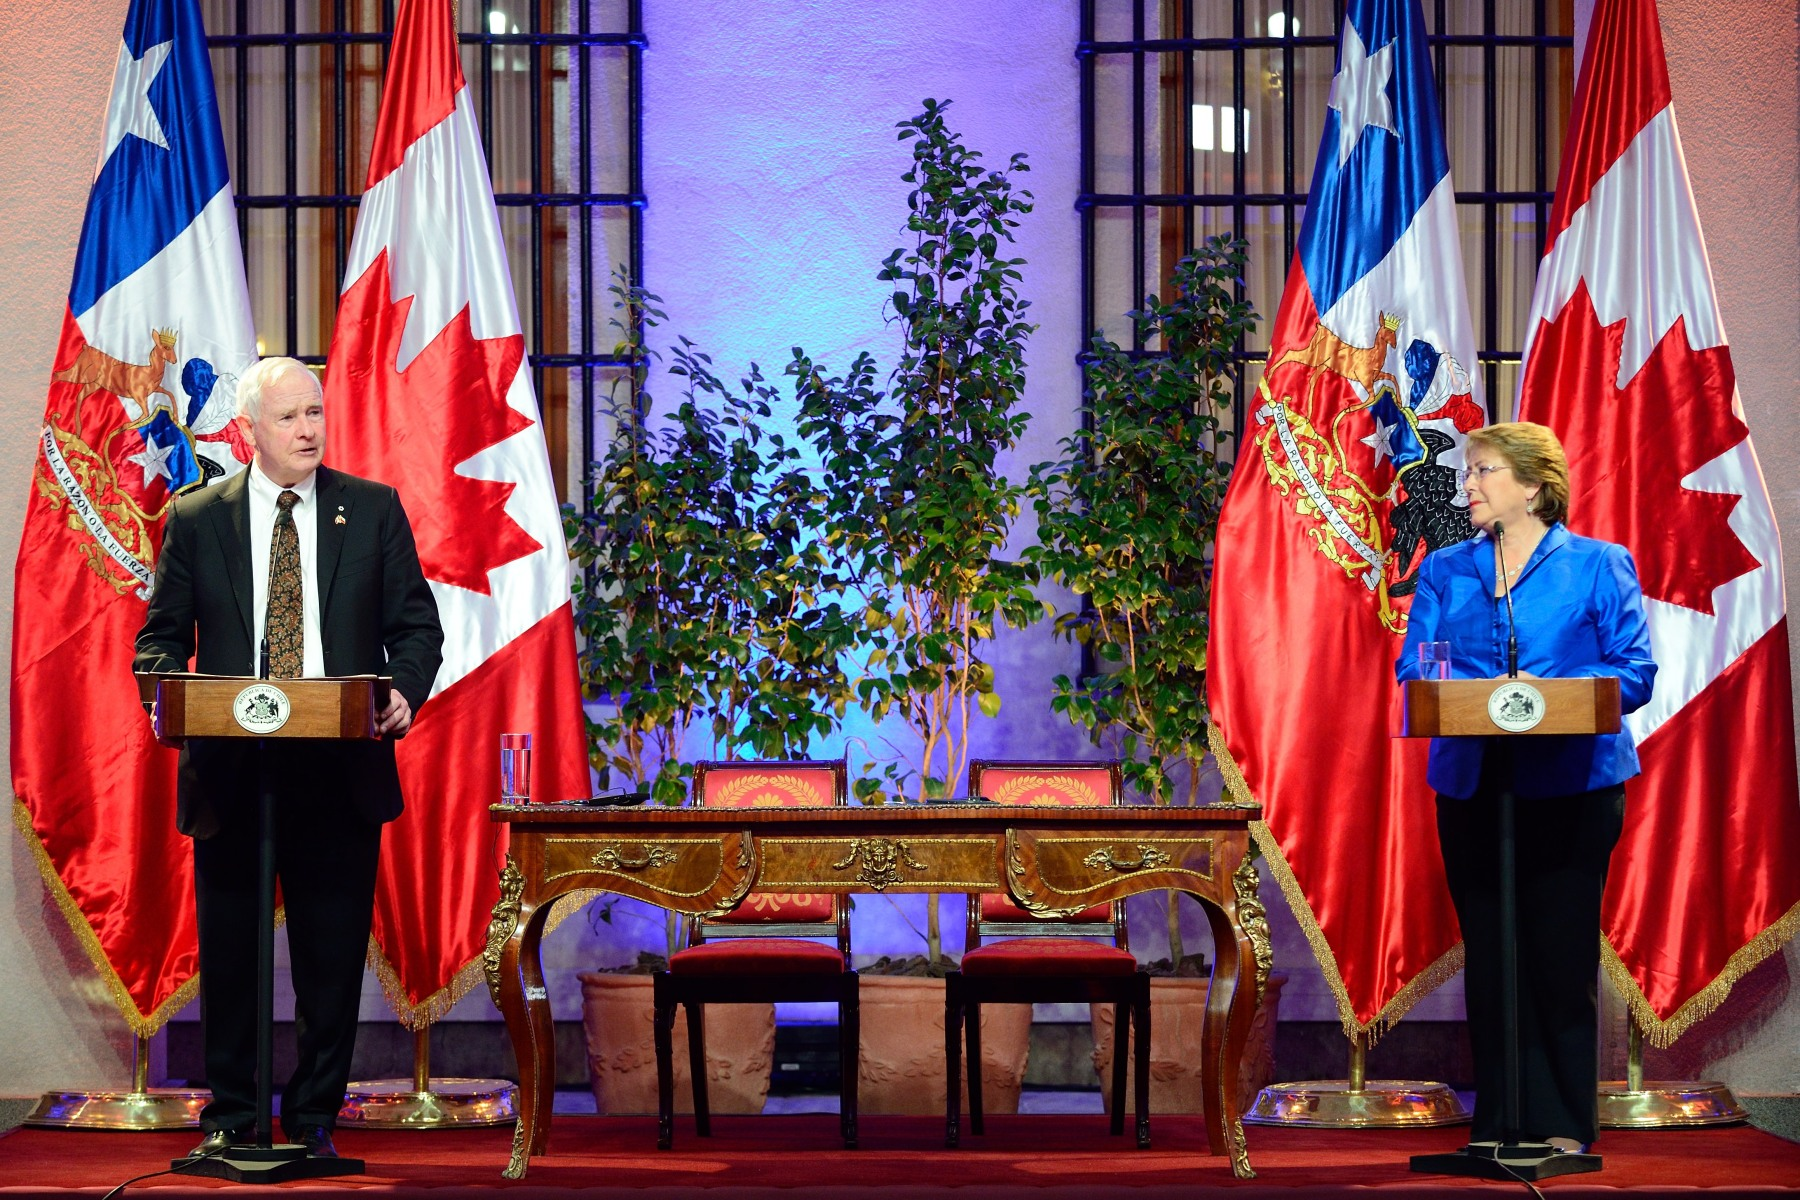 Following their meeting, the Governor General and President Bachelet delivered statements to members of the media.